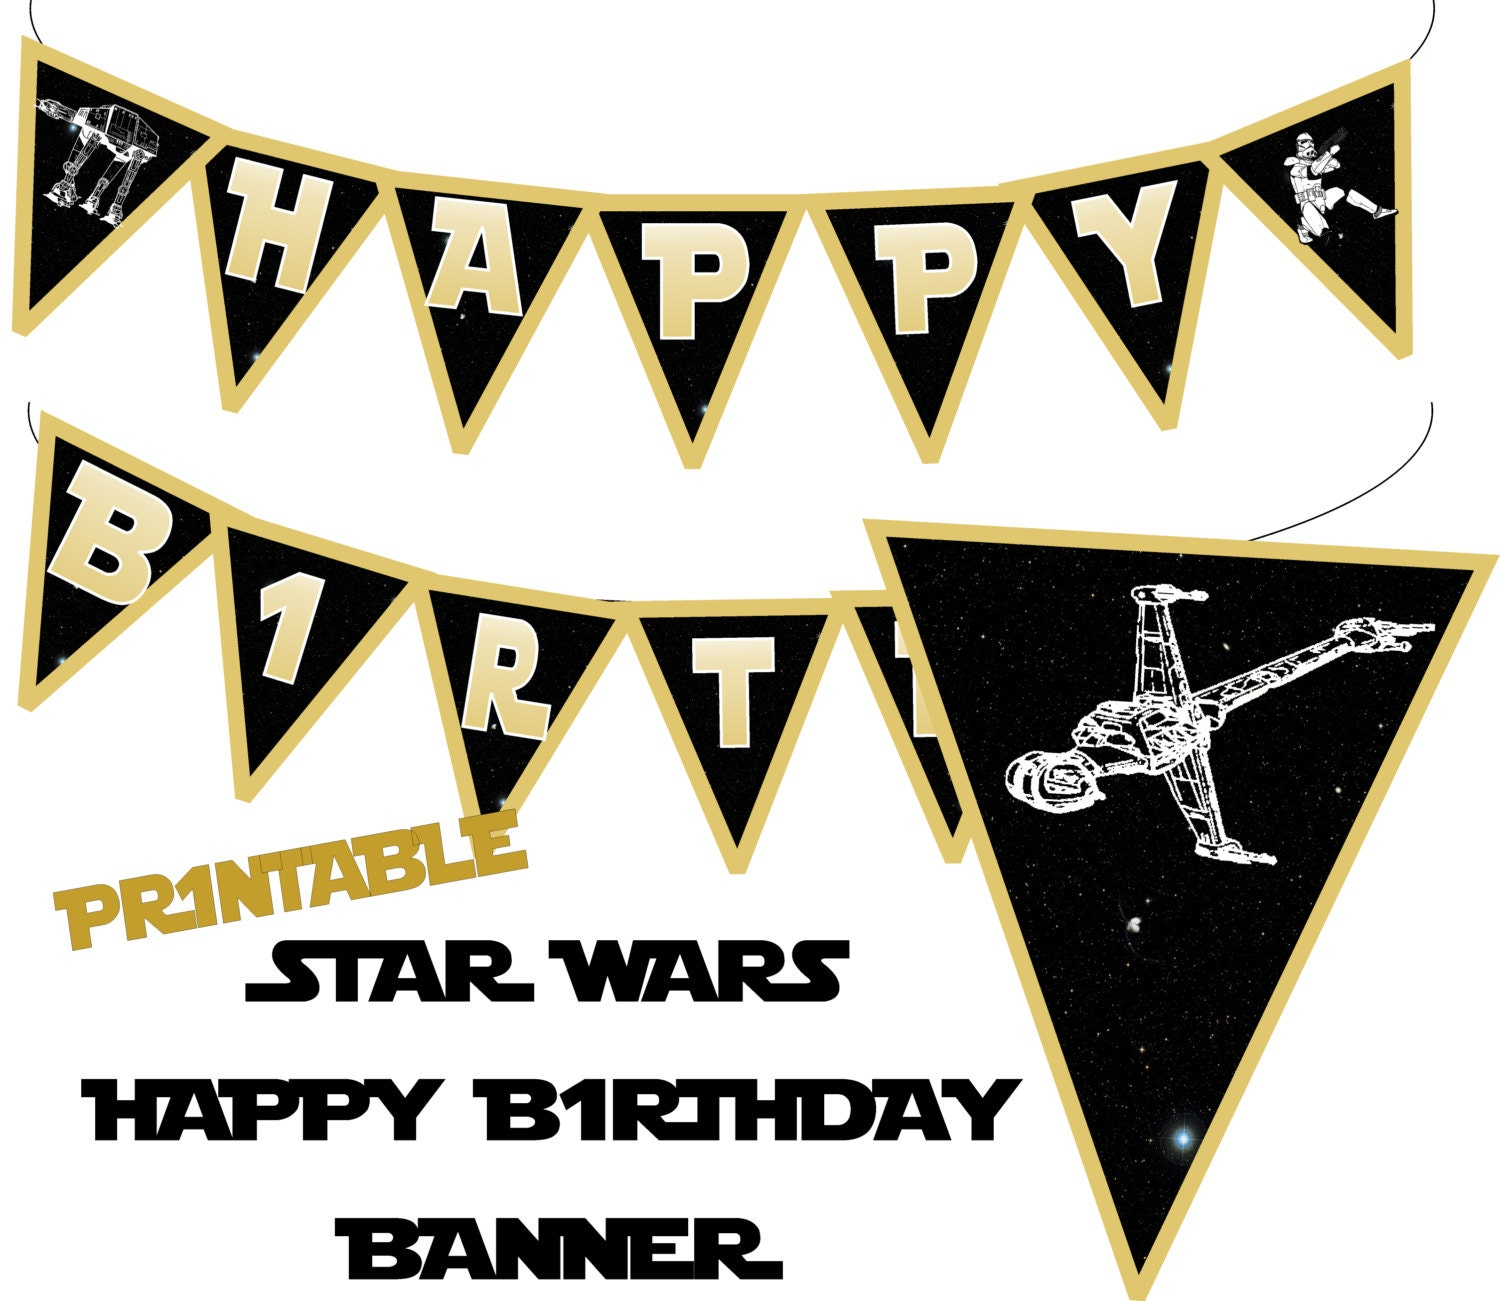 star wars banner star wars happy birthday banner star wars